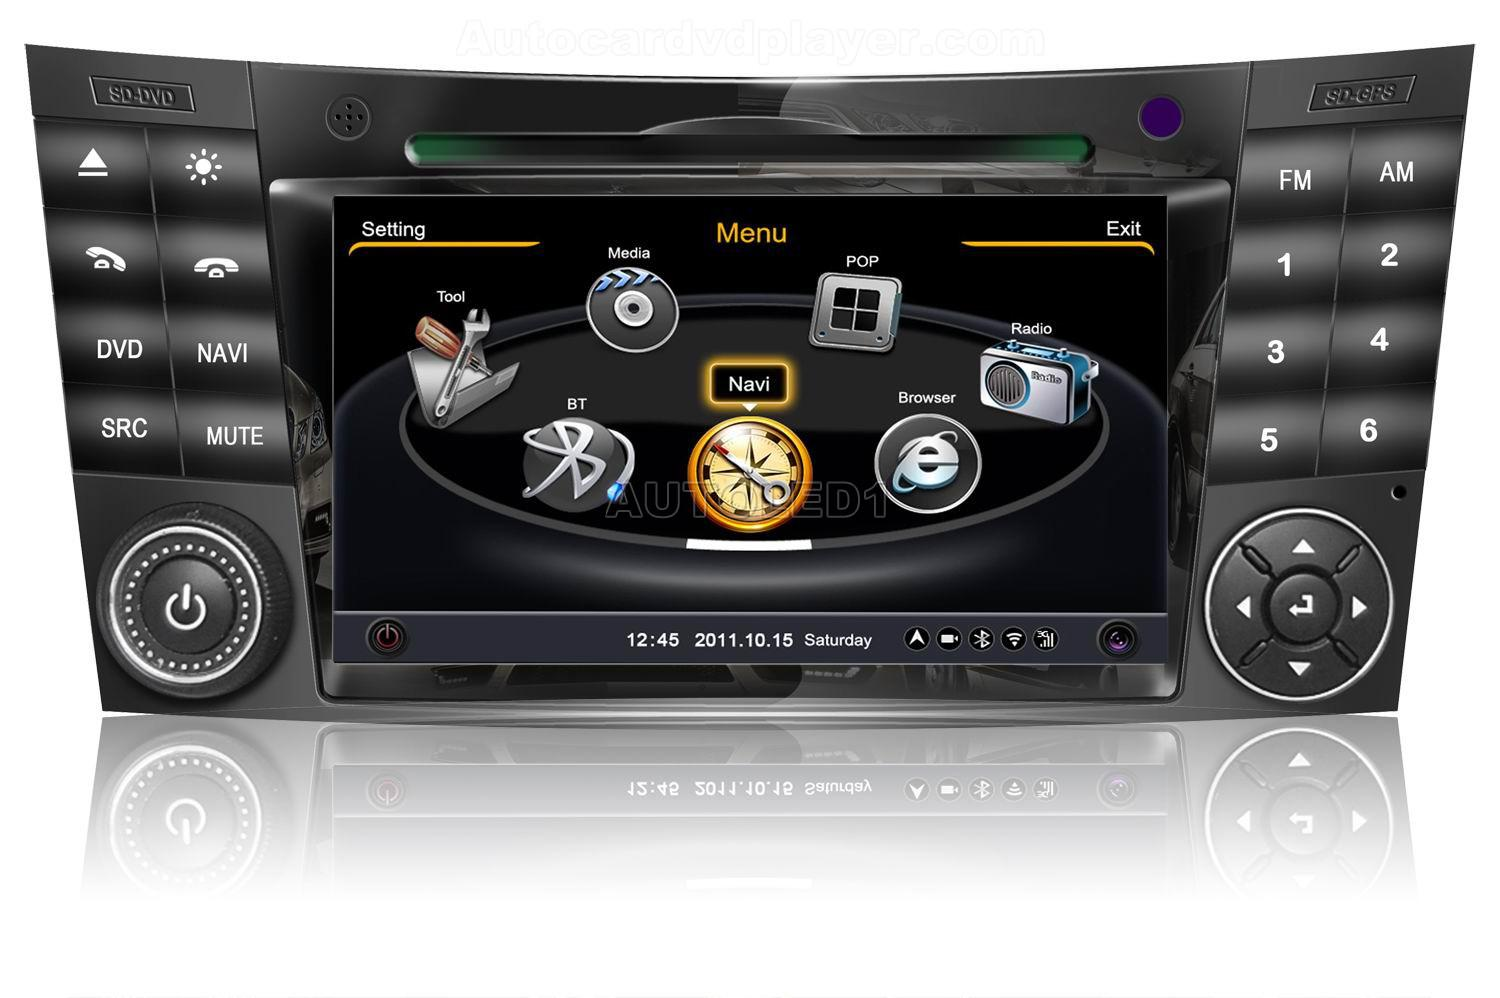 Oem for mercedes benz e class clk cls w211 w219 w209 w463 car dvd player with gps navigationfree map radioam fm stereo system bluetooth portable dvd